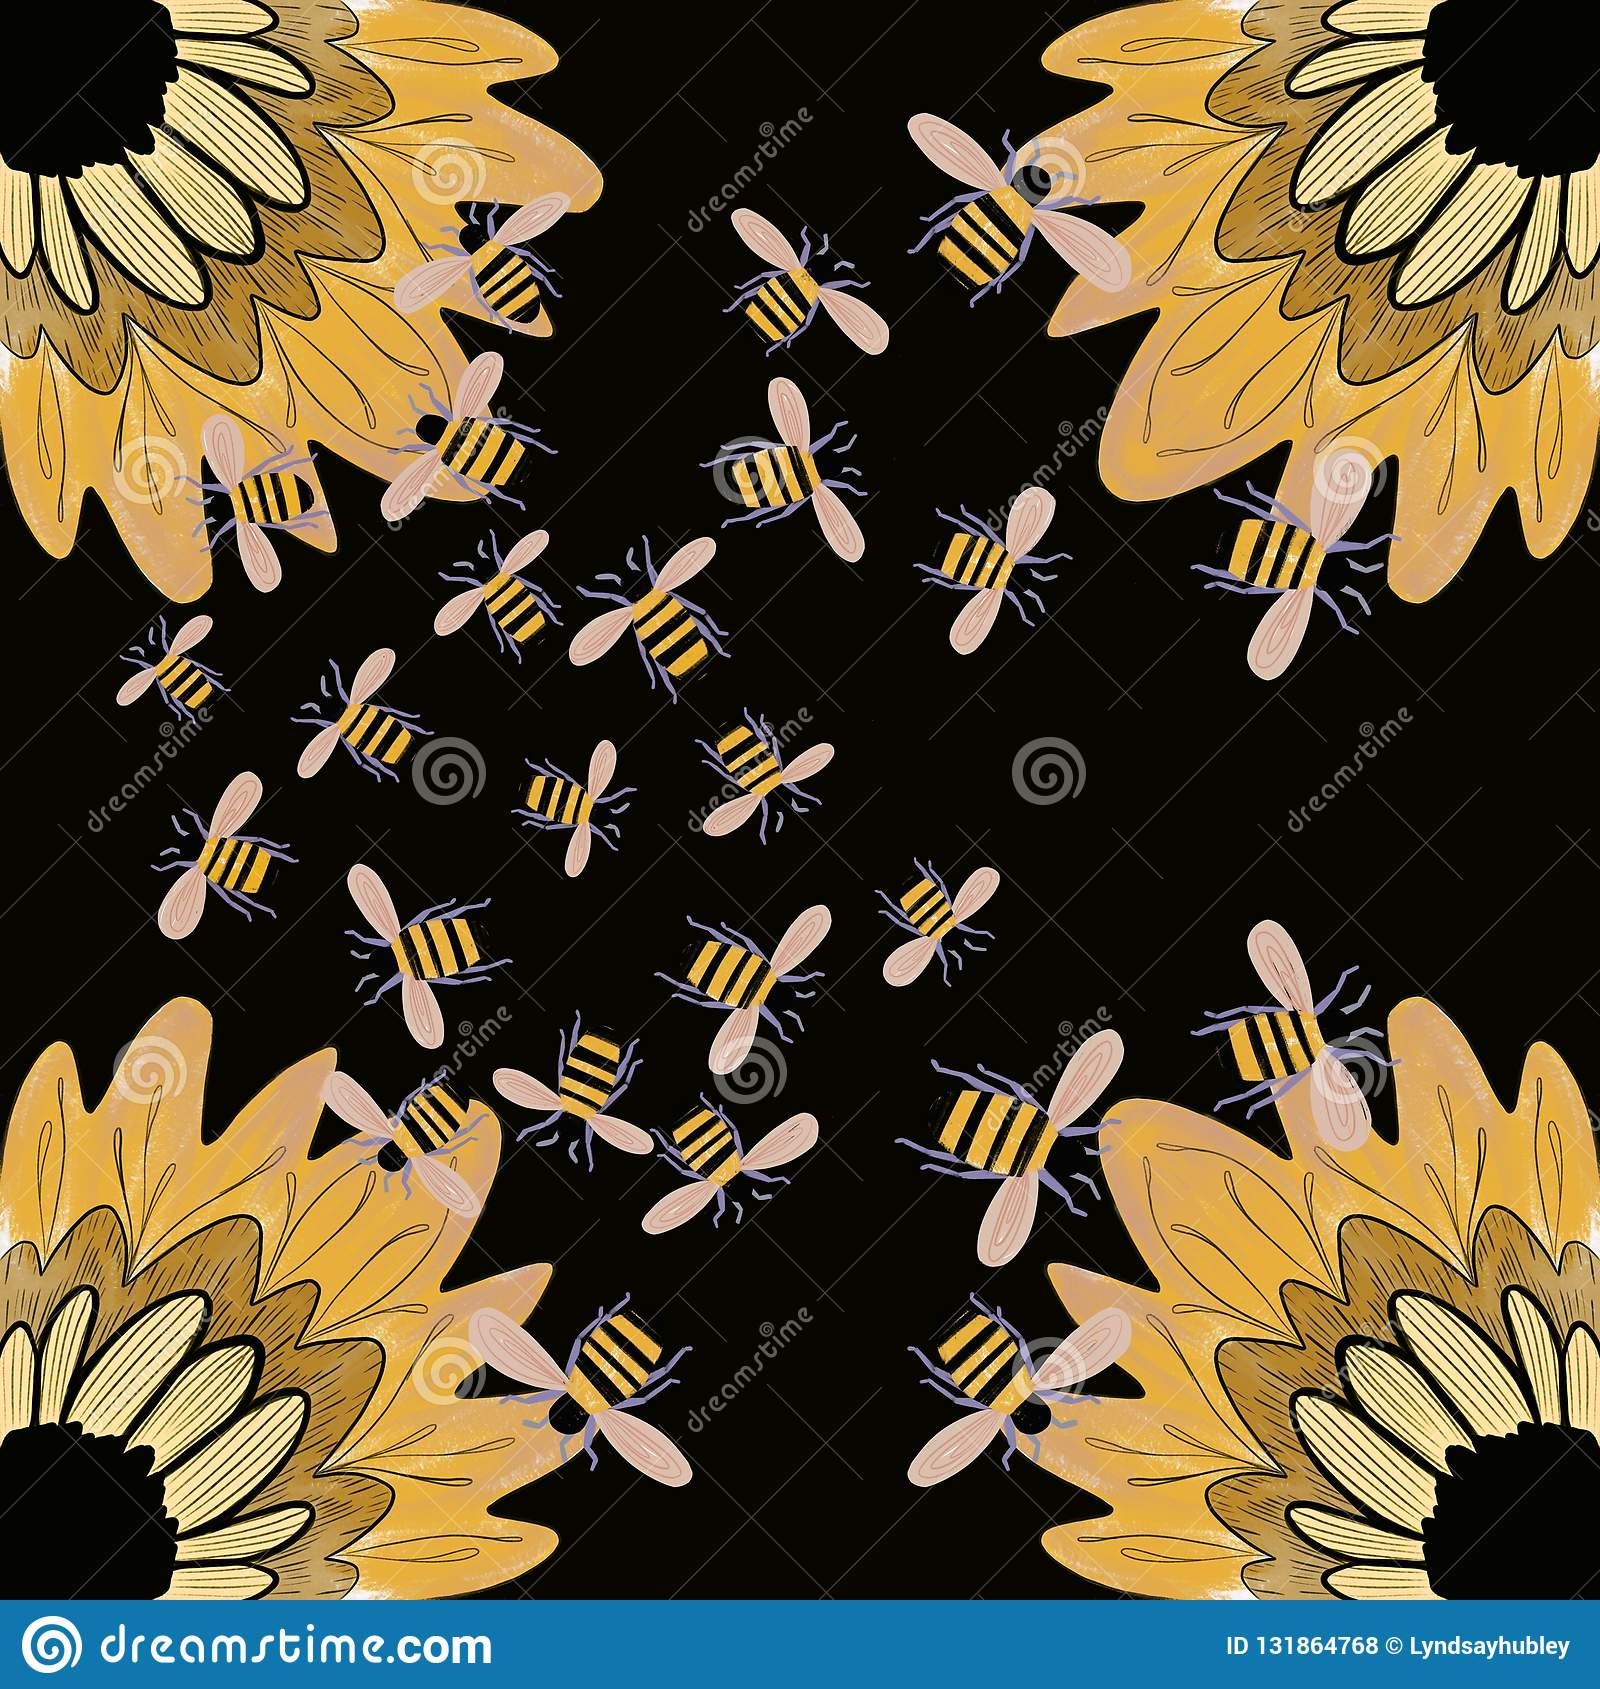 honey bees sunflowers background wallpaper yellow black bumblebees pollinating flowers 131864768